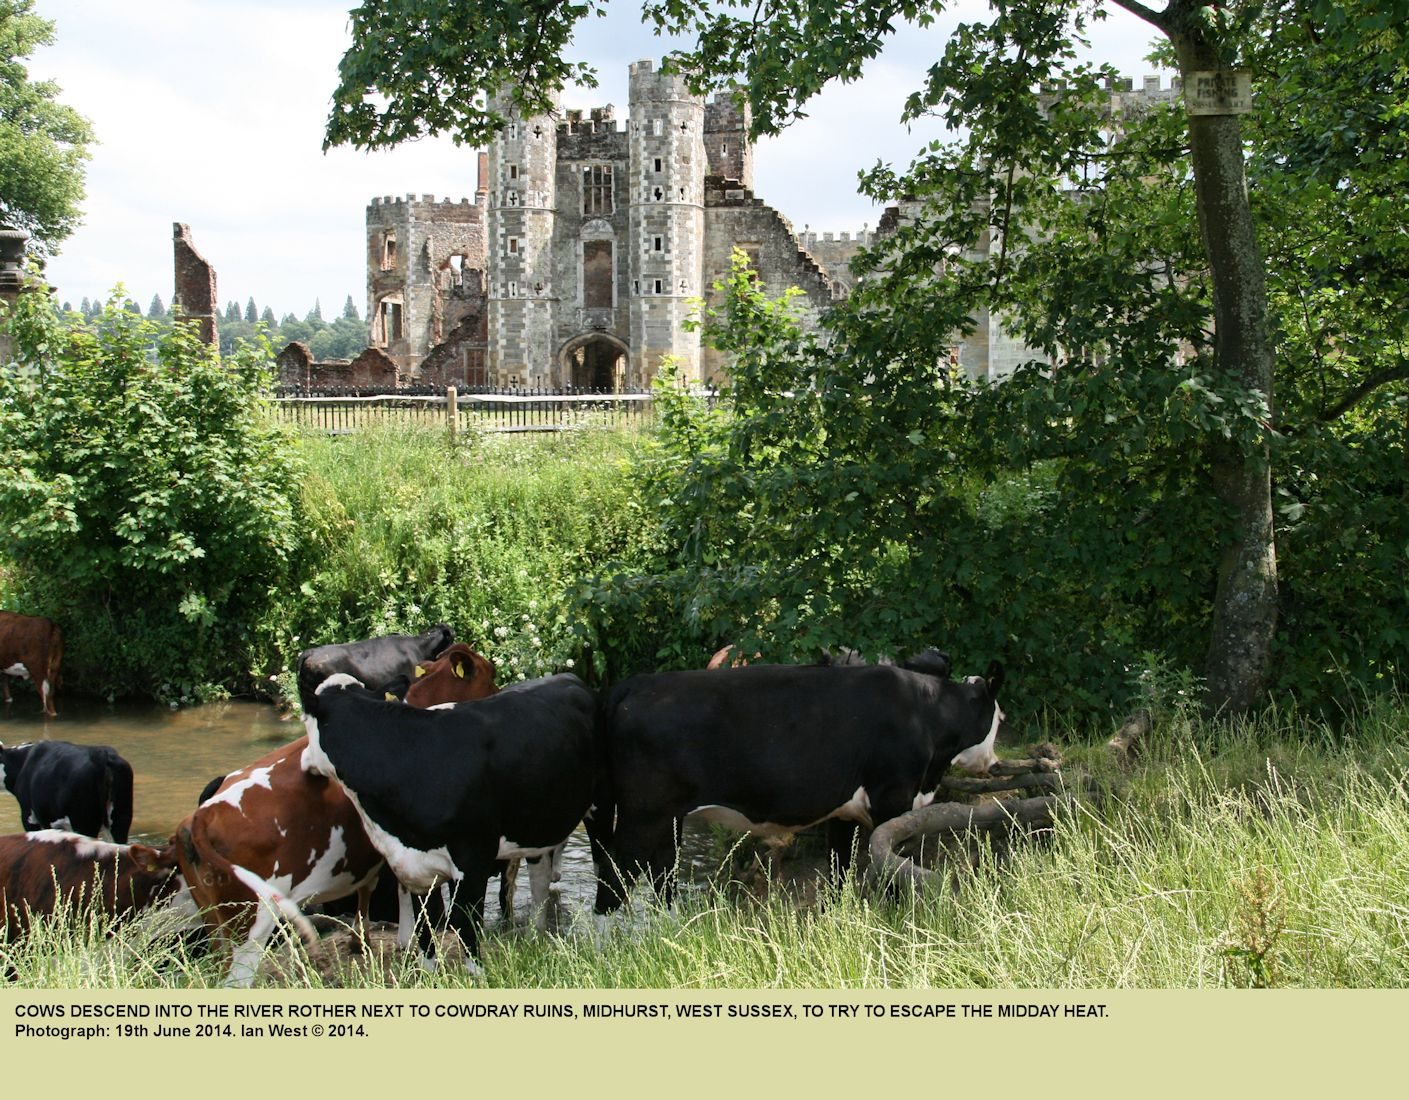 Cows enter the River Rother at Cowdray Ruins, Midhurst, to avoid the heat of the midday sun, 19th June 2014